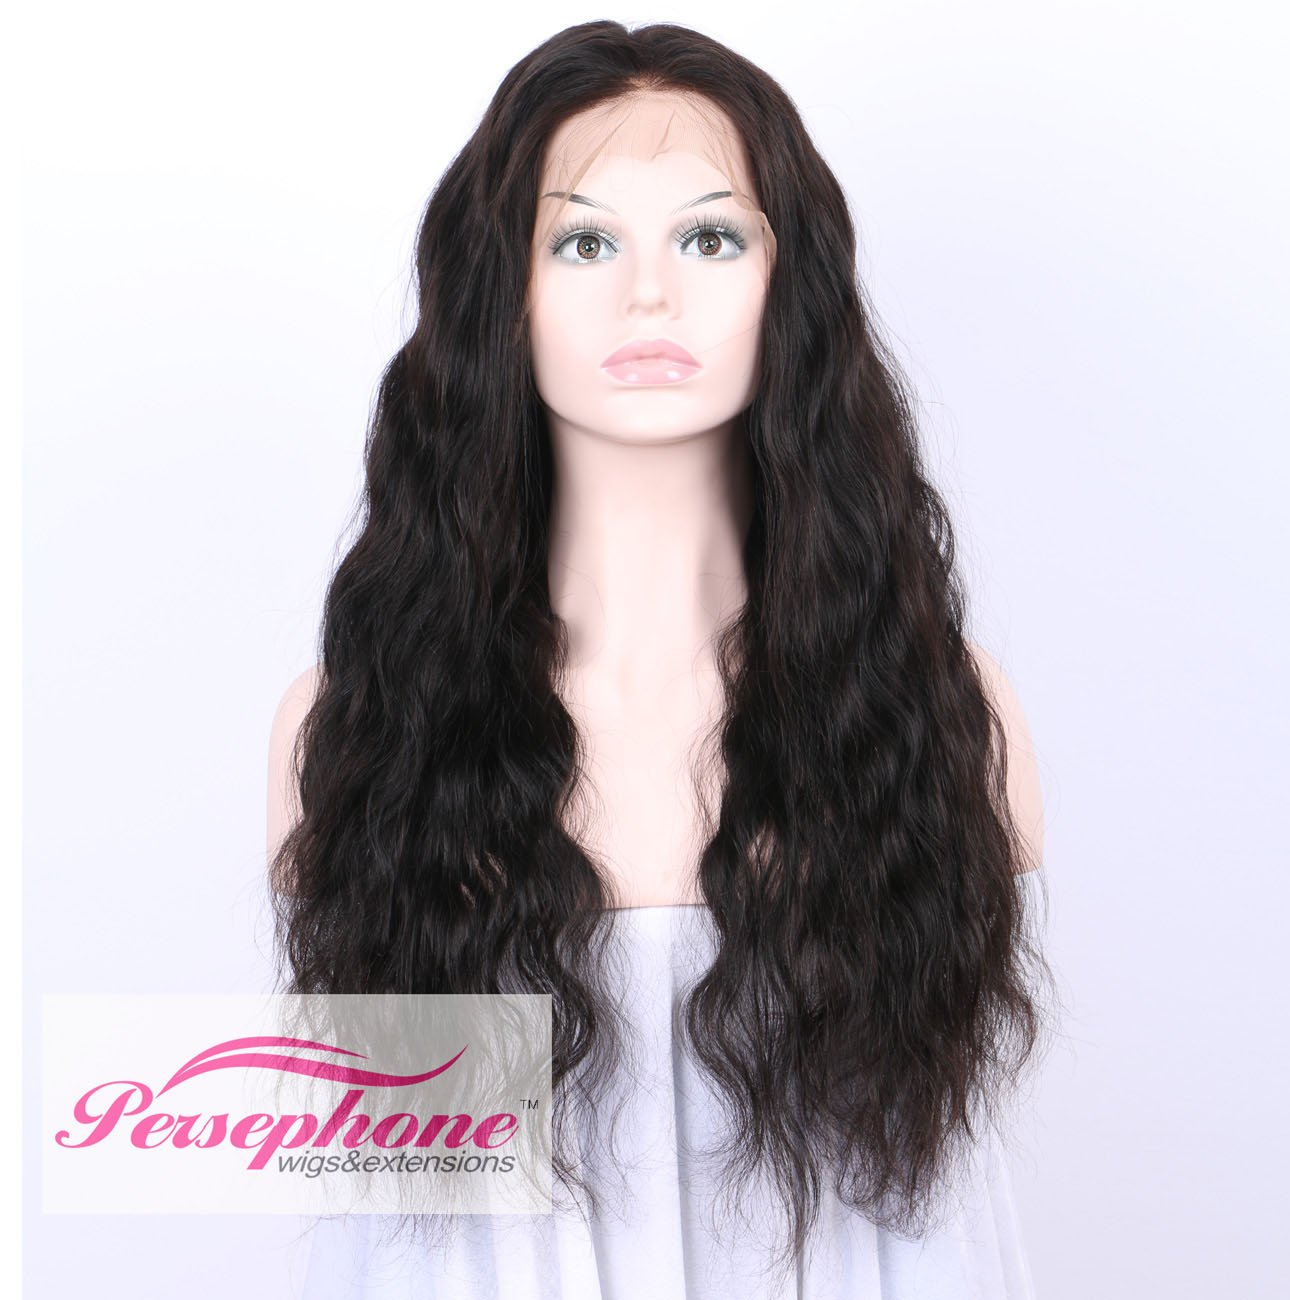 Persephone Glueless 200% Extra Heavy Density Body Wave 360 Lace Frontal Wigs Human Hair with Baby Hair Brazilian Remy Hair Lace Wig with Natural Hairline for Women Natural Color 22inches by Persephone (Image #2)